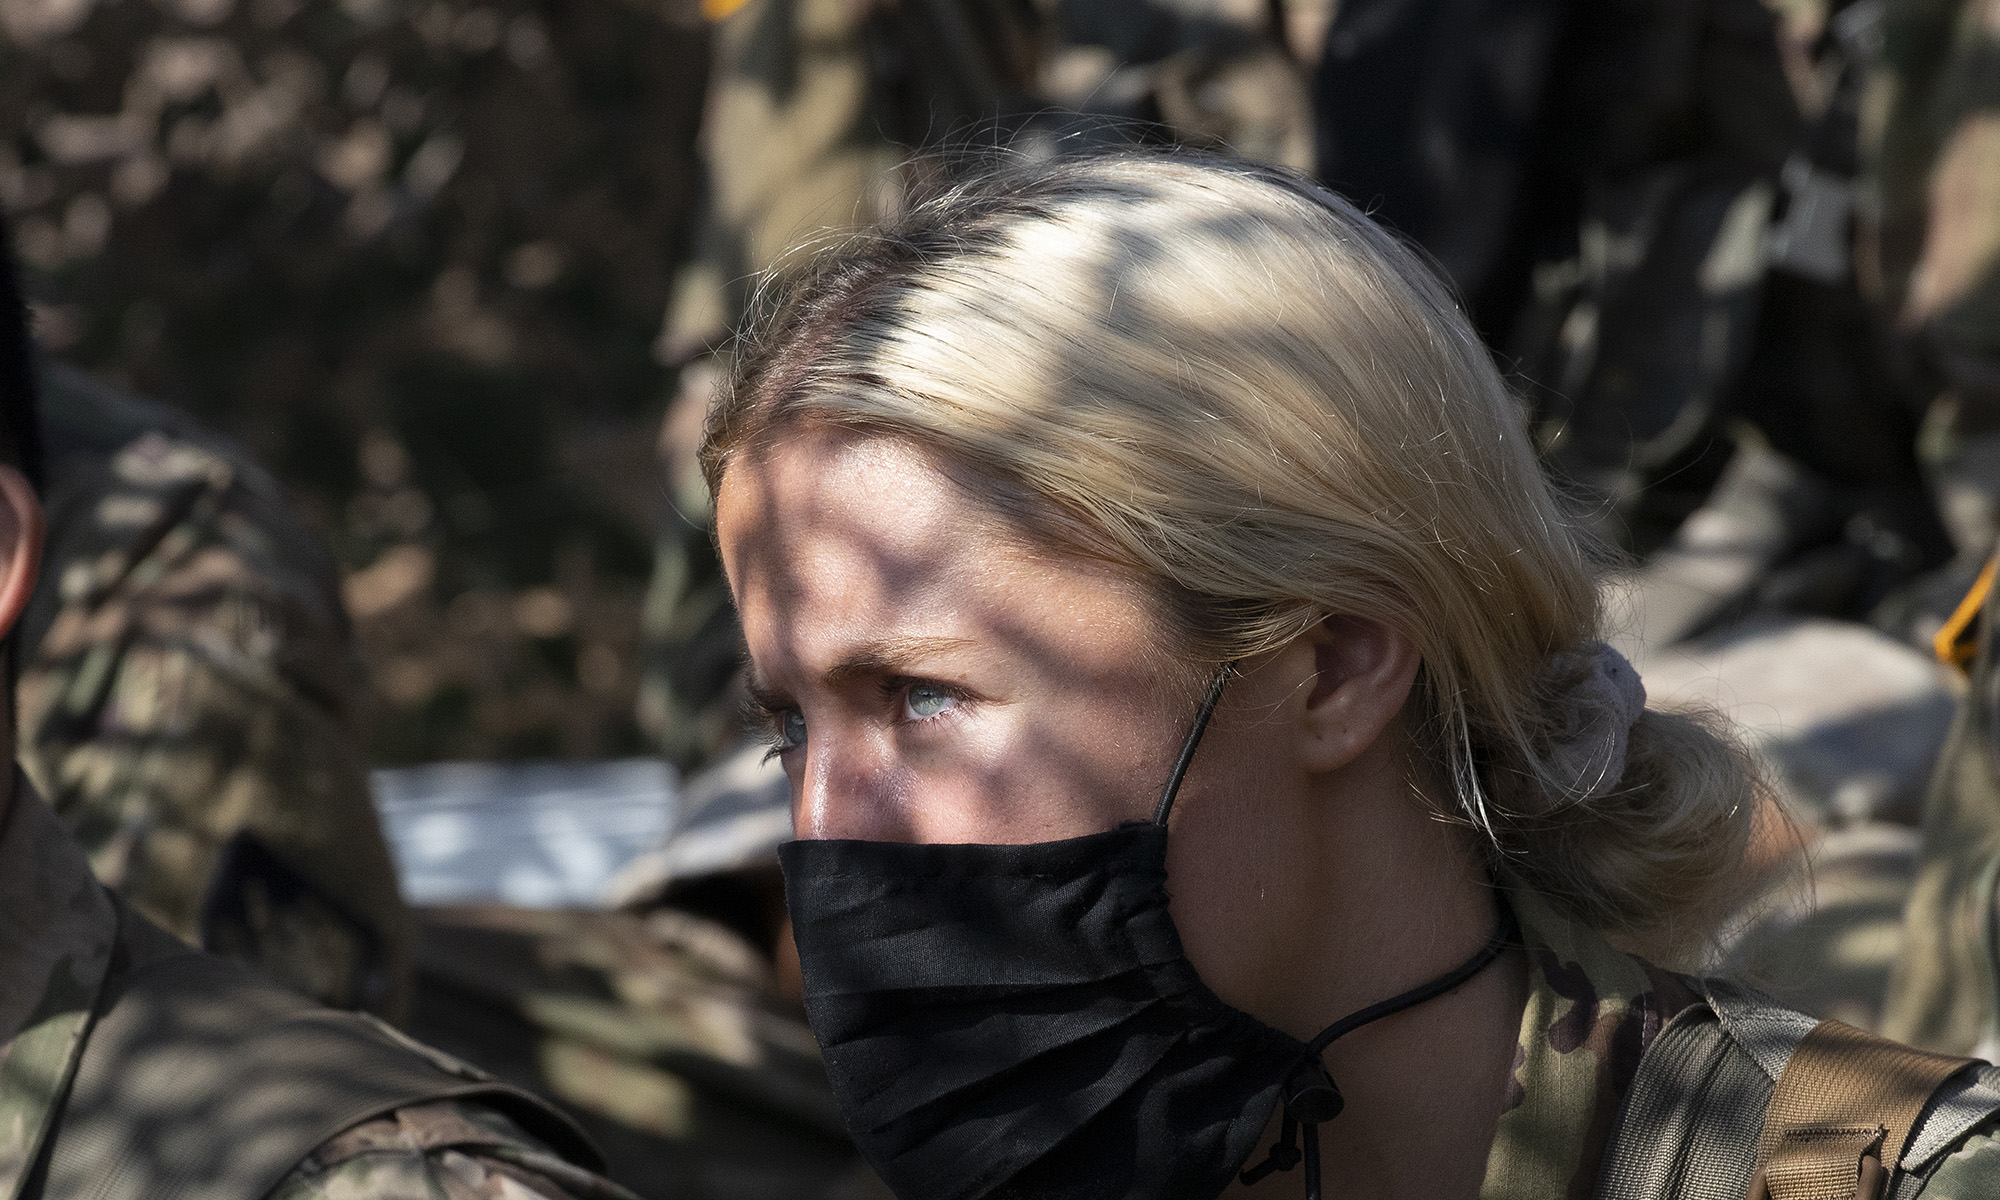 Madison Warne, of Valhalla, N.Y, listens to instructions at a mortar range, Friday, Aug. 7, 2020, at the U.S. Military Academy in West Point, N.Y. (Mark Lennihan/AP)